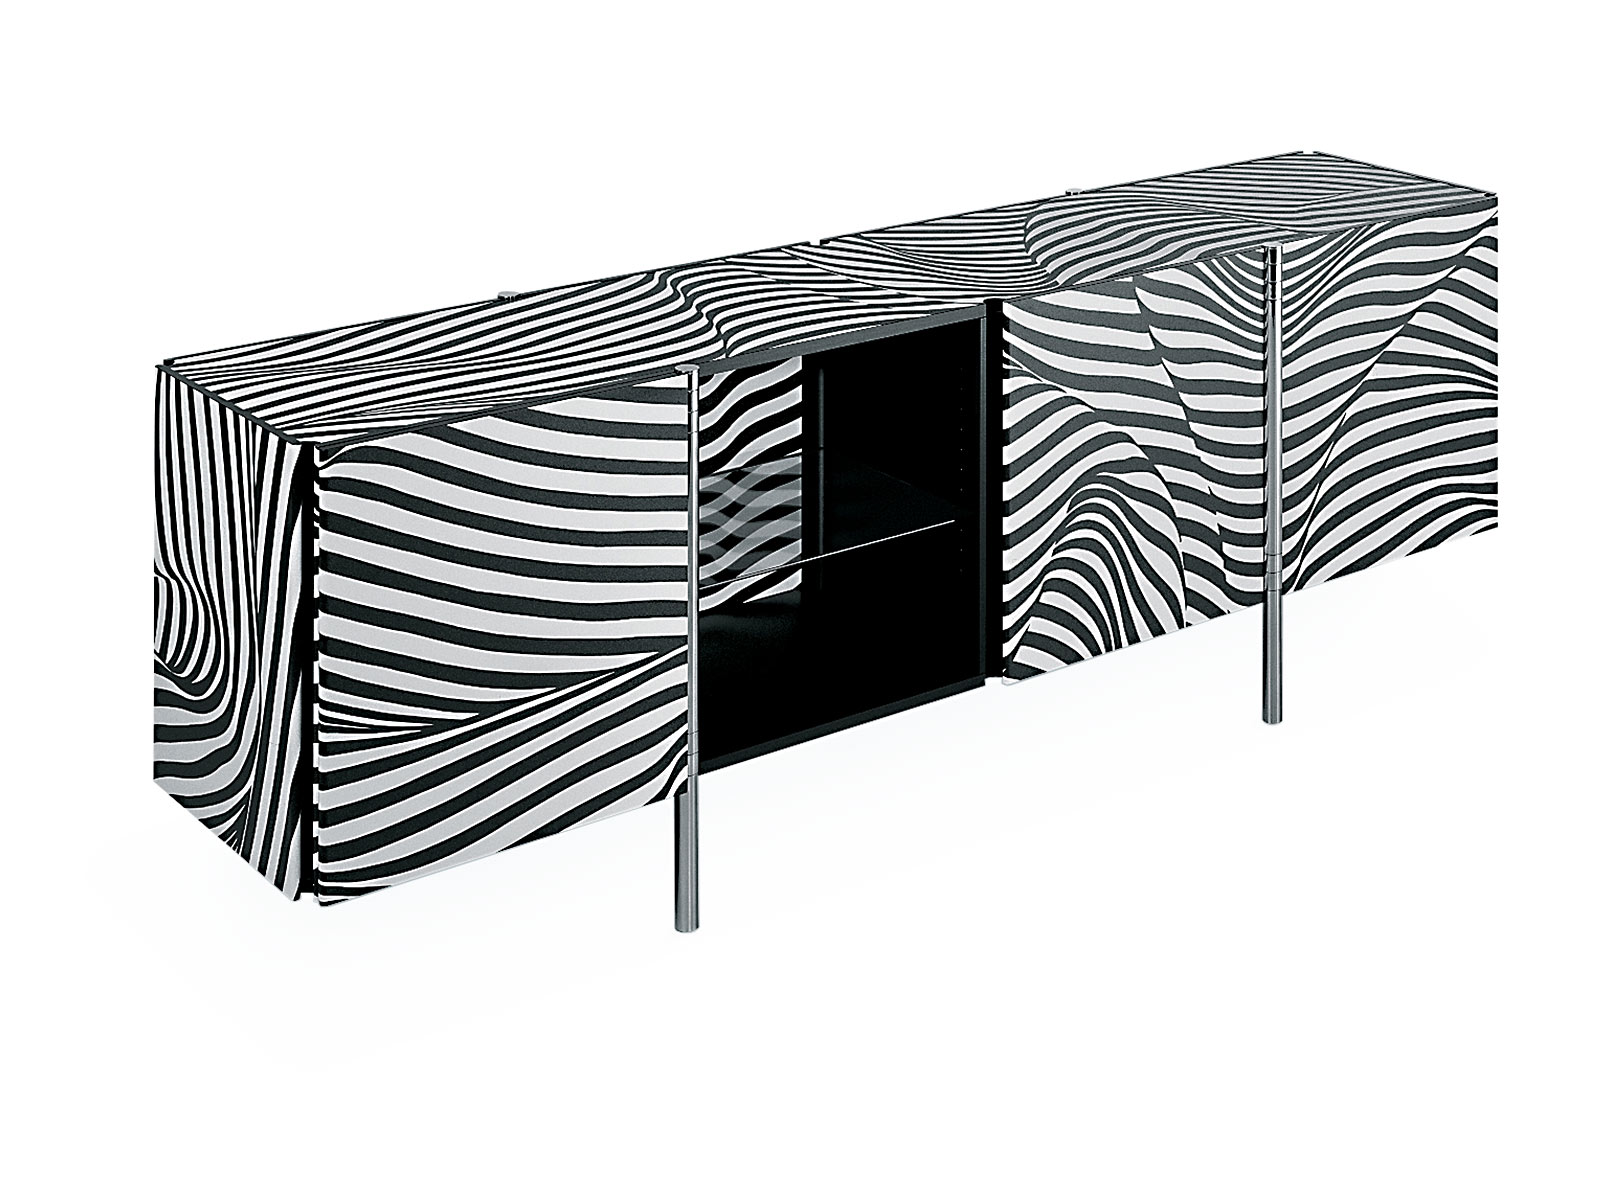 Swiss Design - Sideboard Stripe Amor Wogg